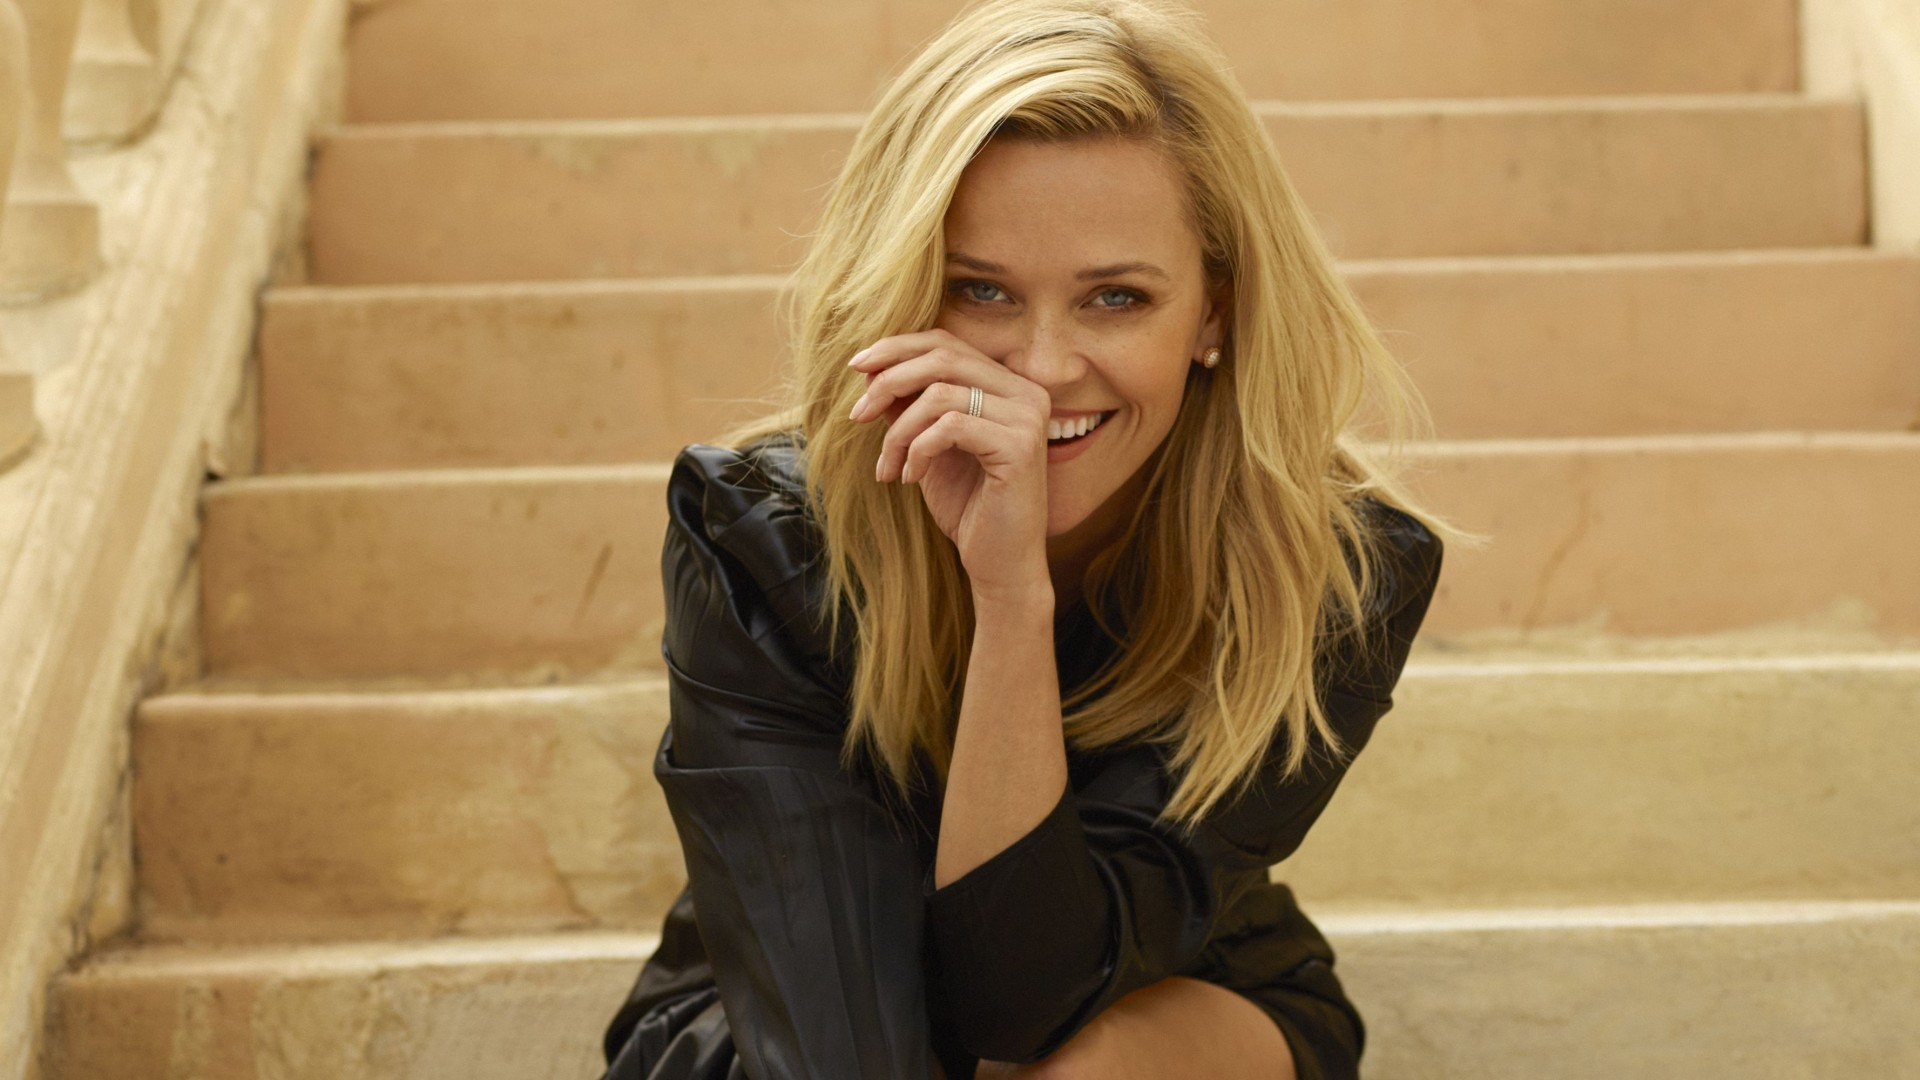 Wallpaper Reese Witherspoon Most Popular Celebs In 2015